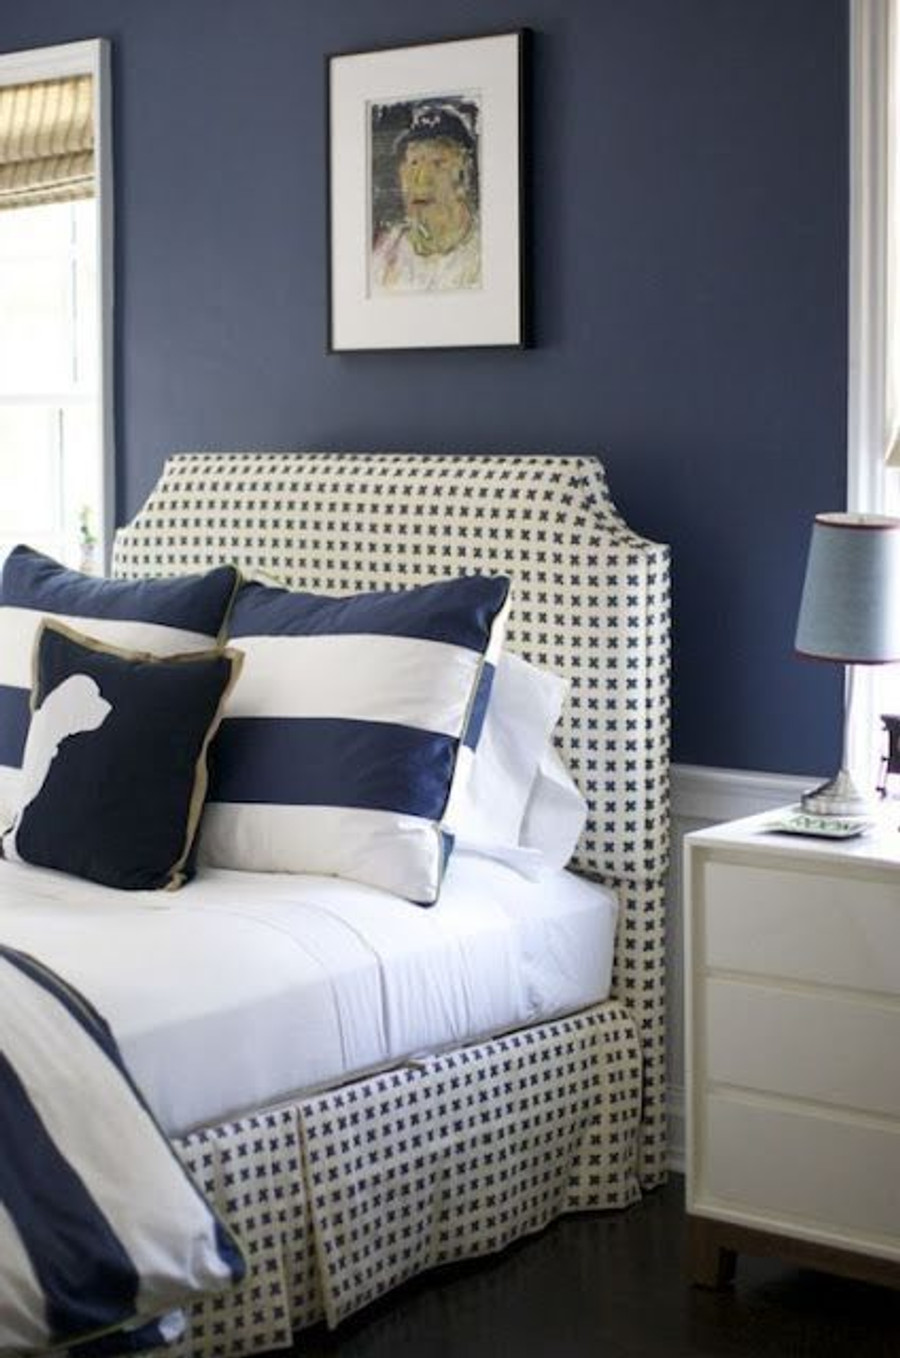 Cross Check Navy on Tint on Bed